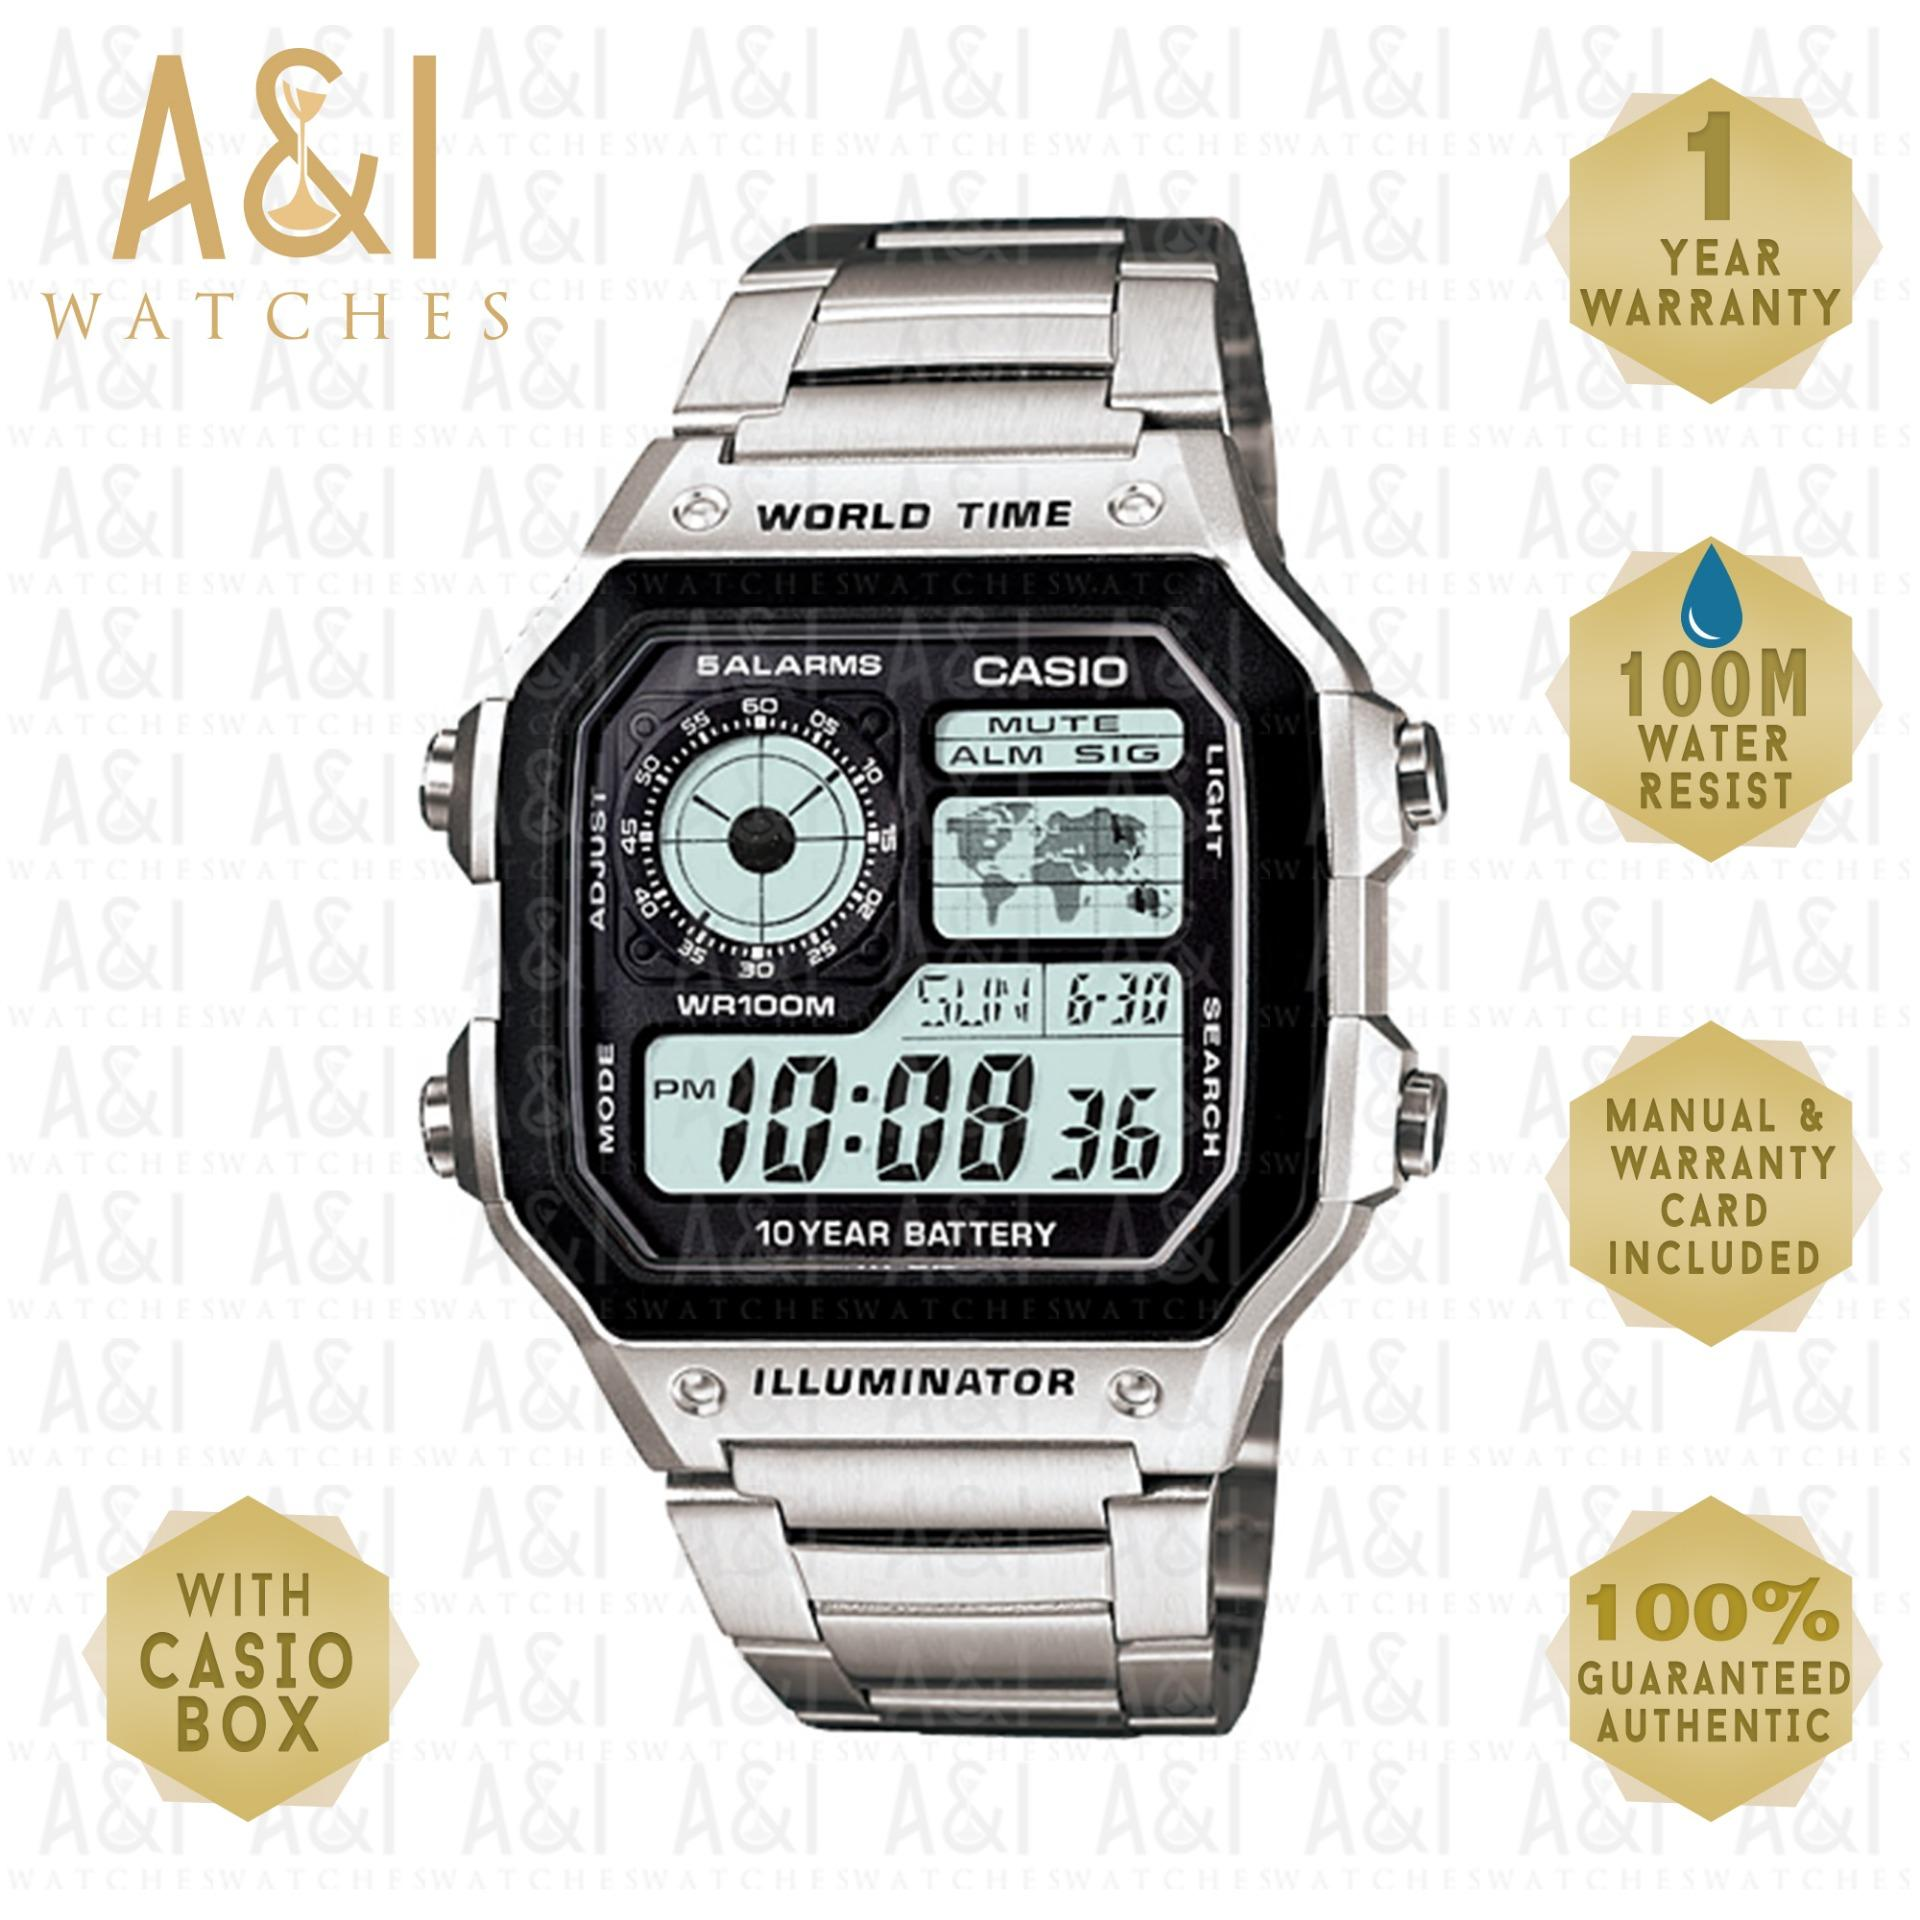 Casio Philippines Watches For Sale Prices Reviews Lazada Jam Tangan Wanita Aw 48he 1avdf Original Illuminator Stainless Steel Ae 1200whd 1yr Warranty